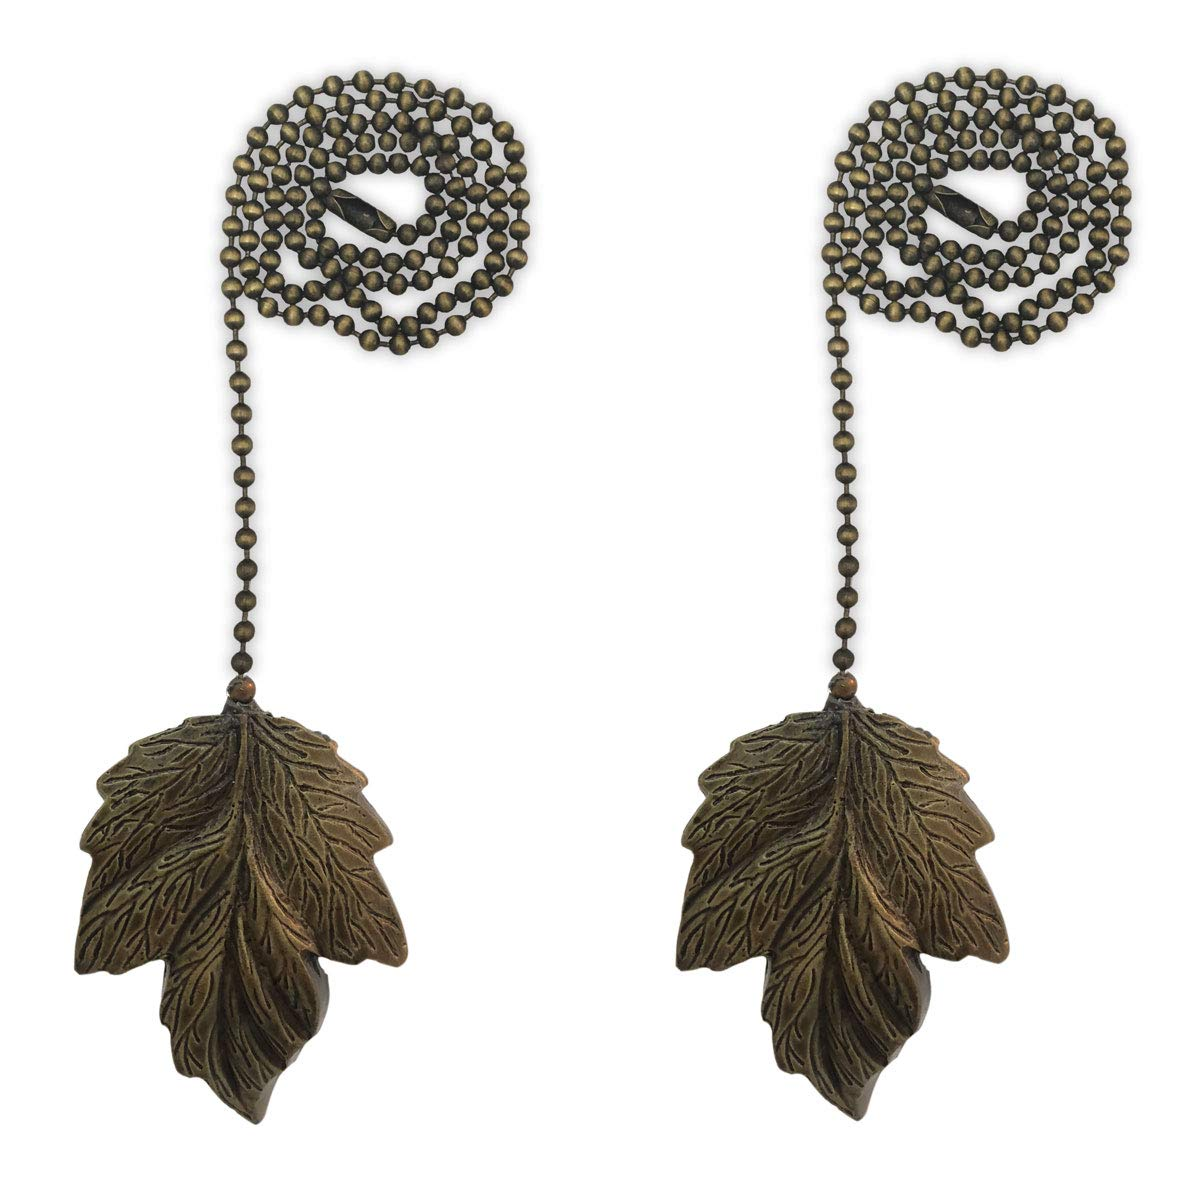 Royal Designs FP-1006AB-2 Leaf Design Fan Pull Chain, Antique Brass, Set of 2